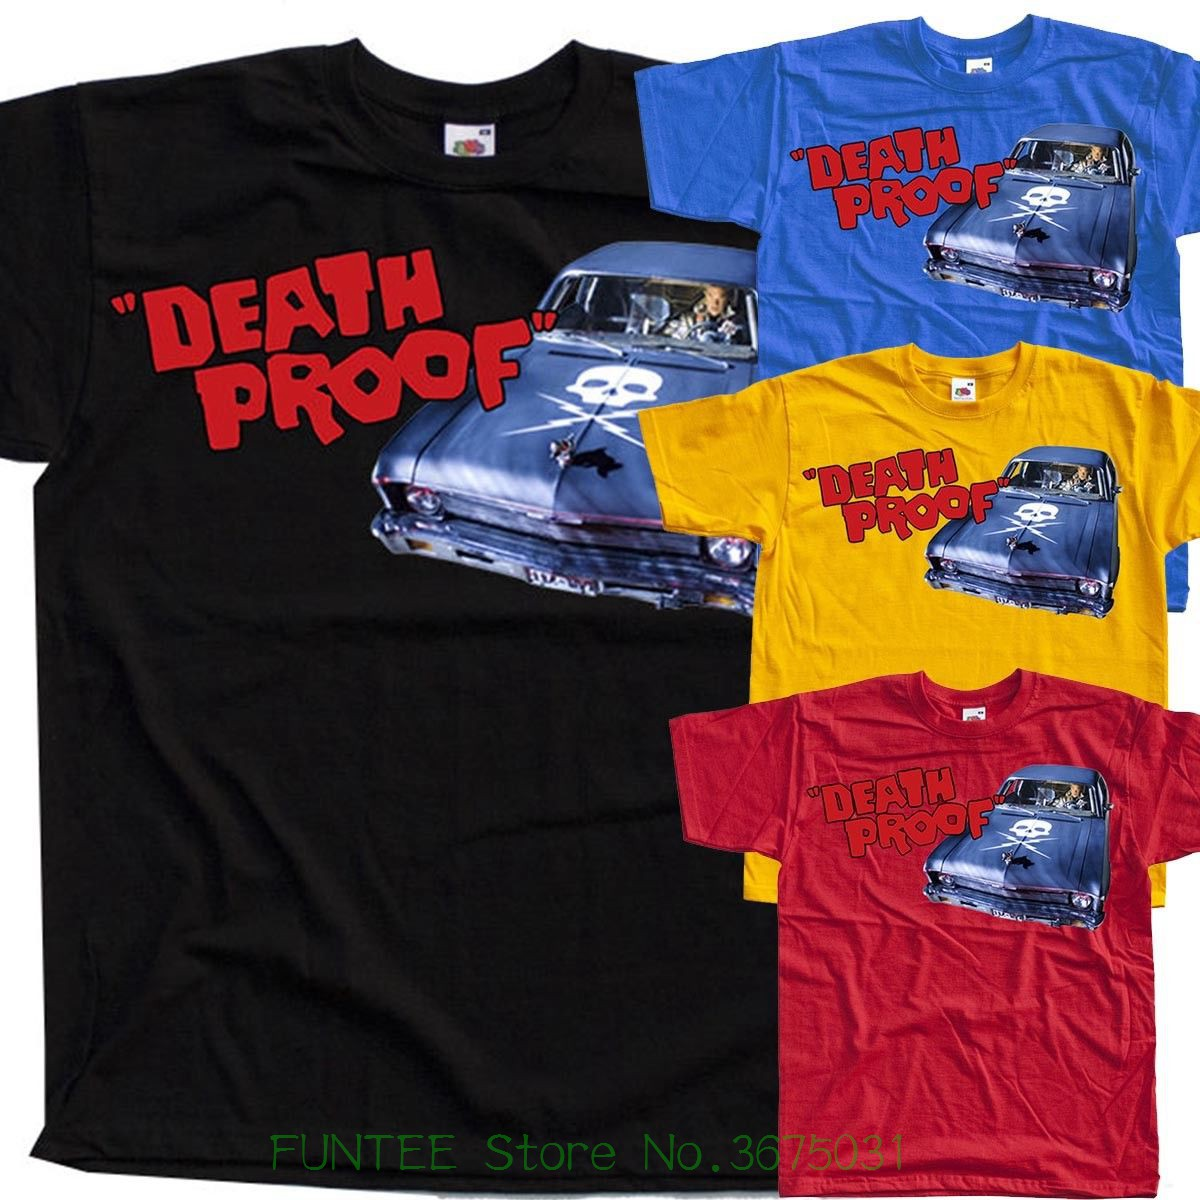 tees-men's-clothing-big-size-s-xxl-death-proof-ver-5-quentin-font-b-tarantino-b-font-poster-t-shirt-all-sizes-s-to-5xl